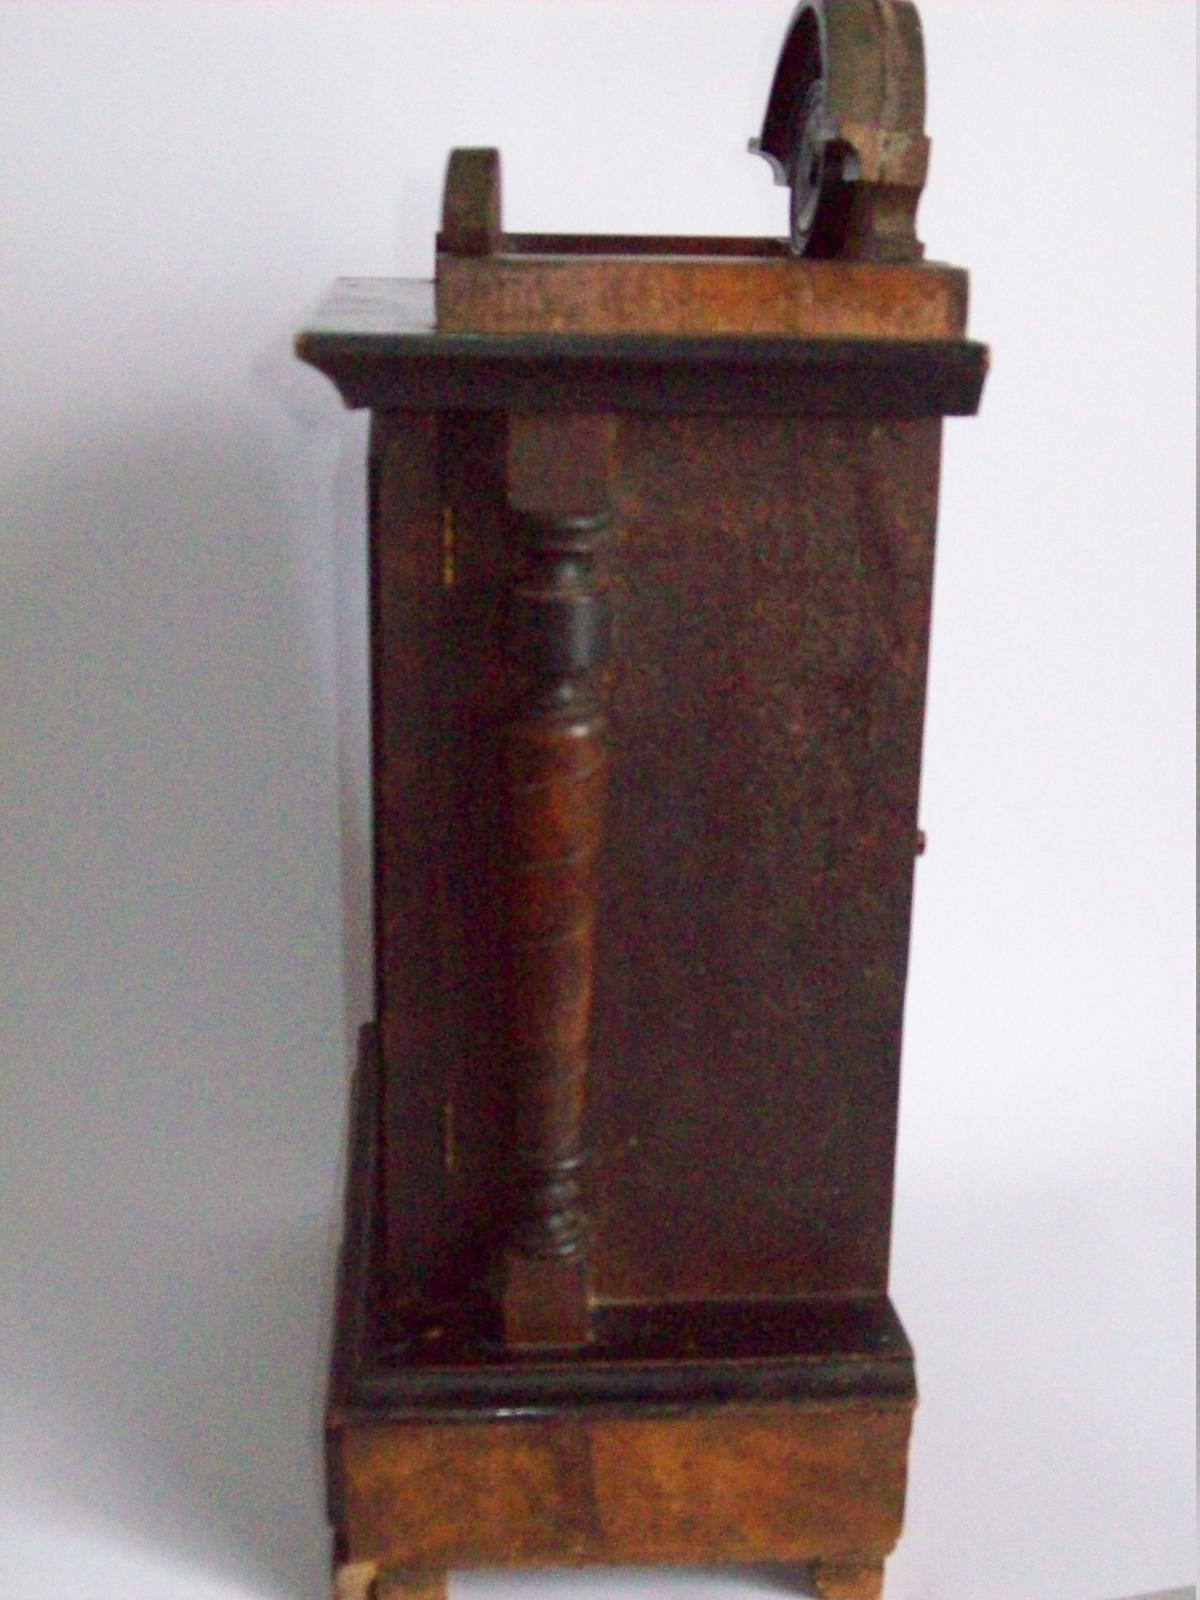 Mantle Clock side view.